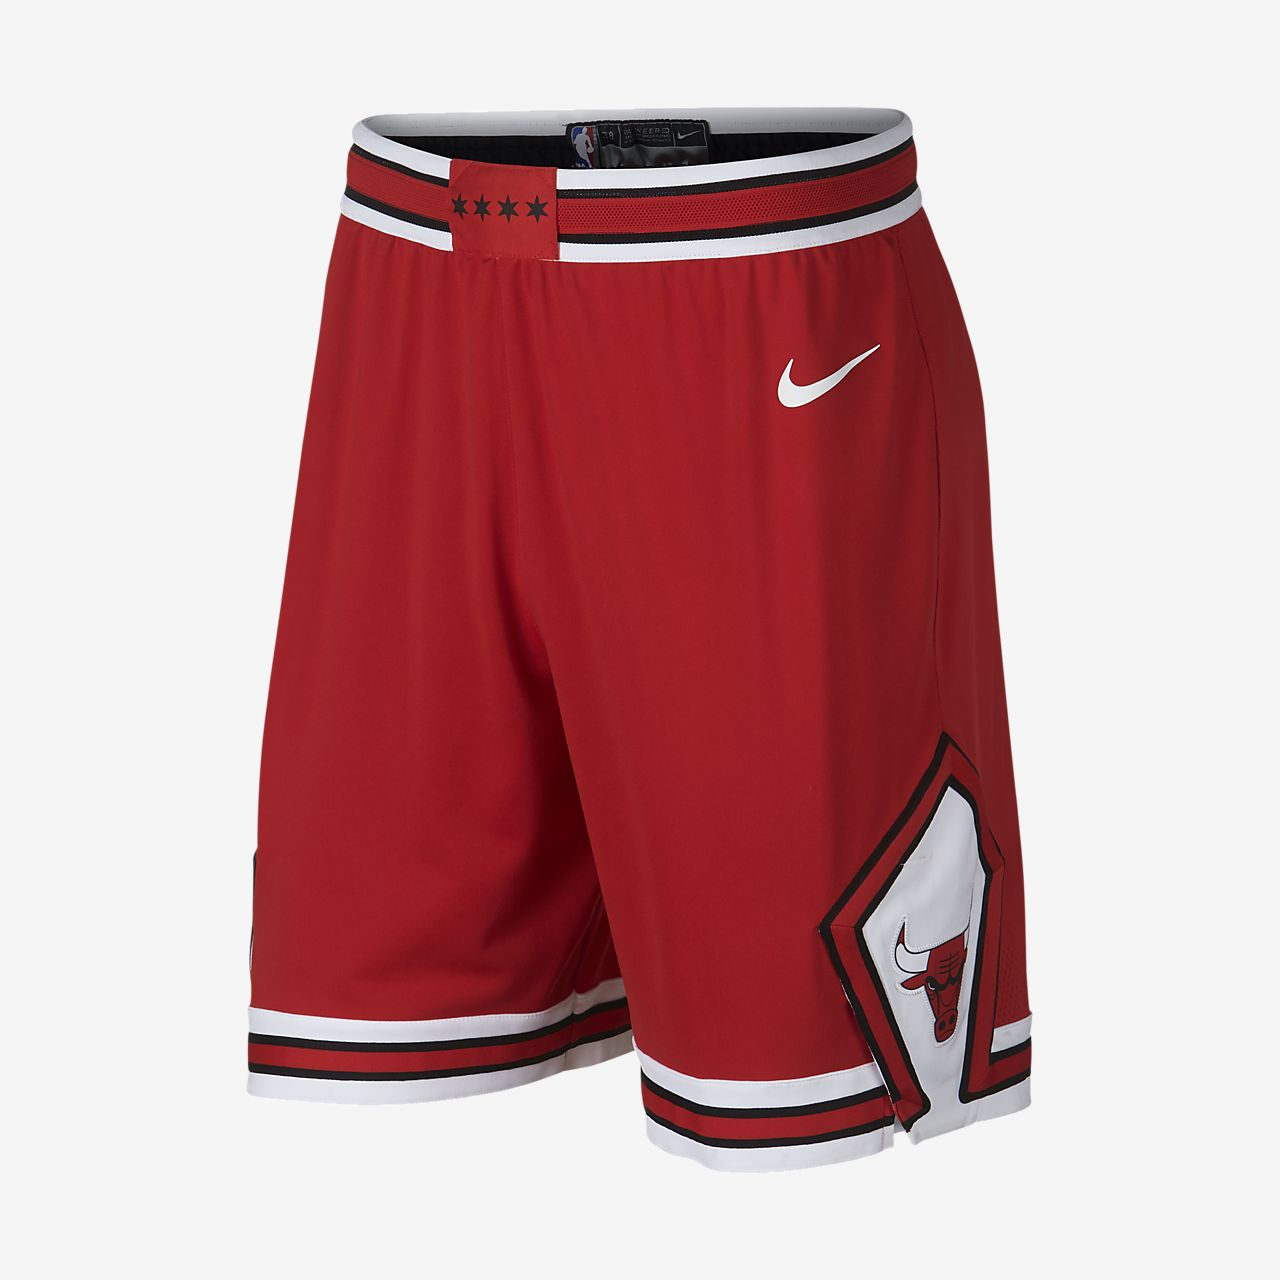 De Pantalón Bulls Authentic Nike La Nba Hombre Icon Chicago Edition Corto UVpSzM